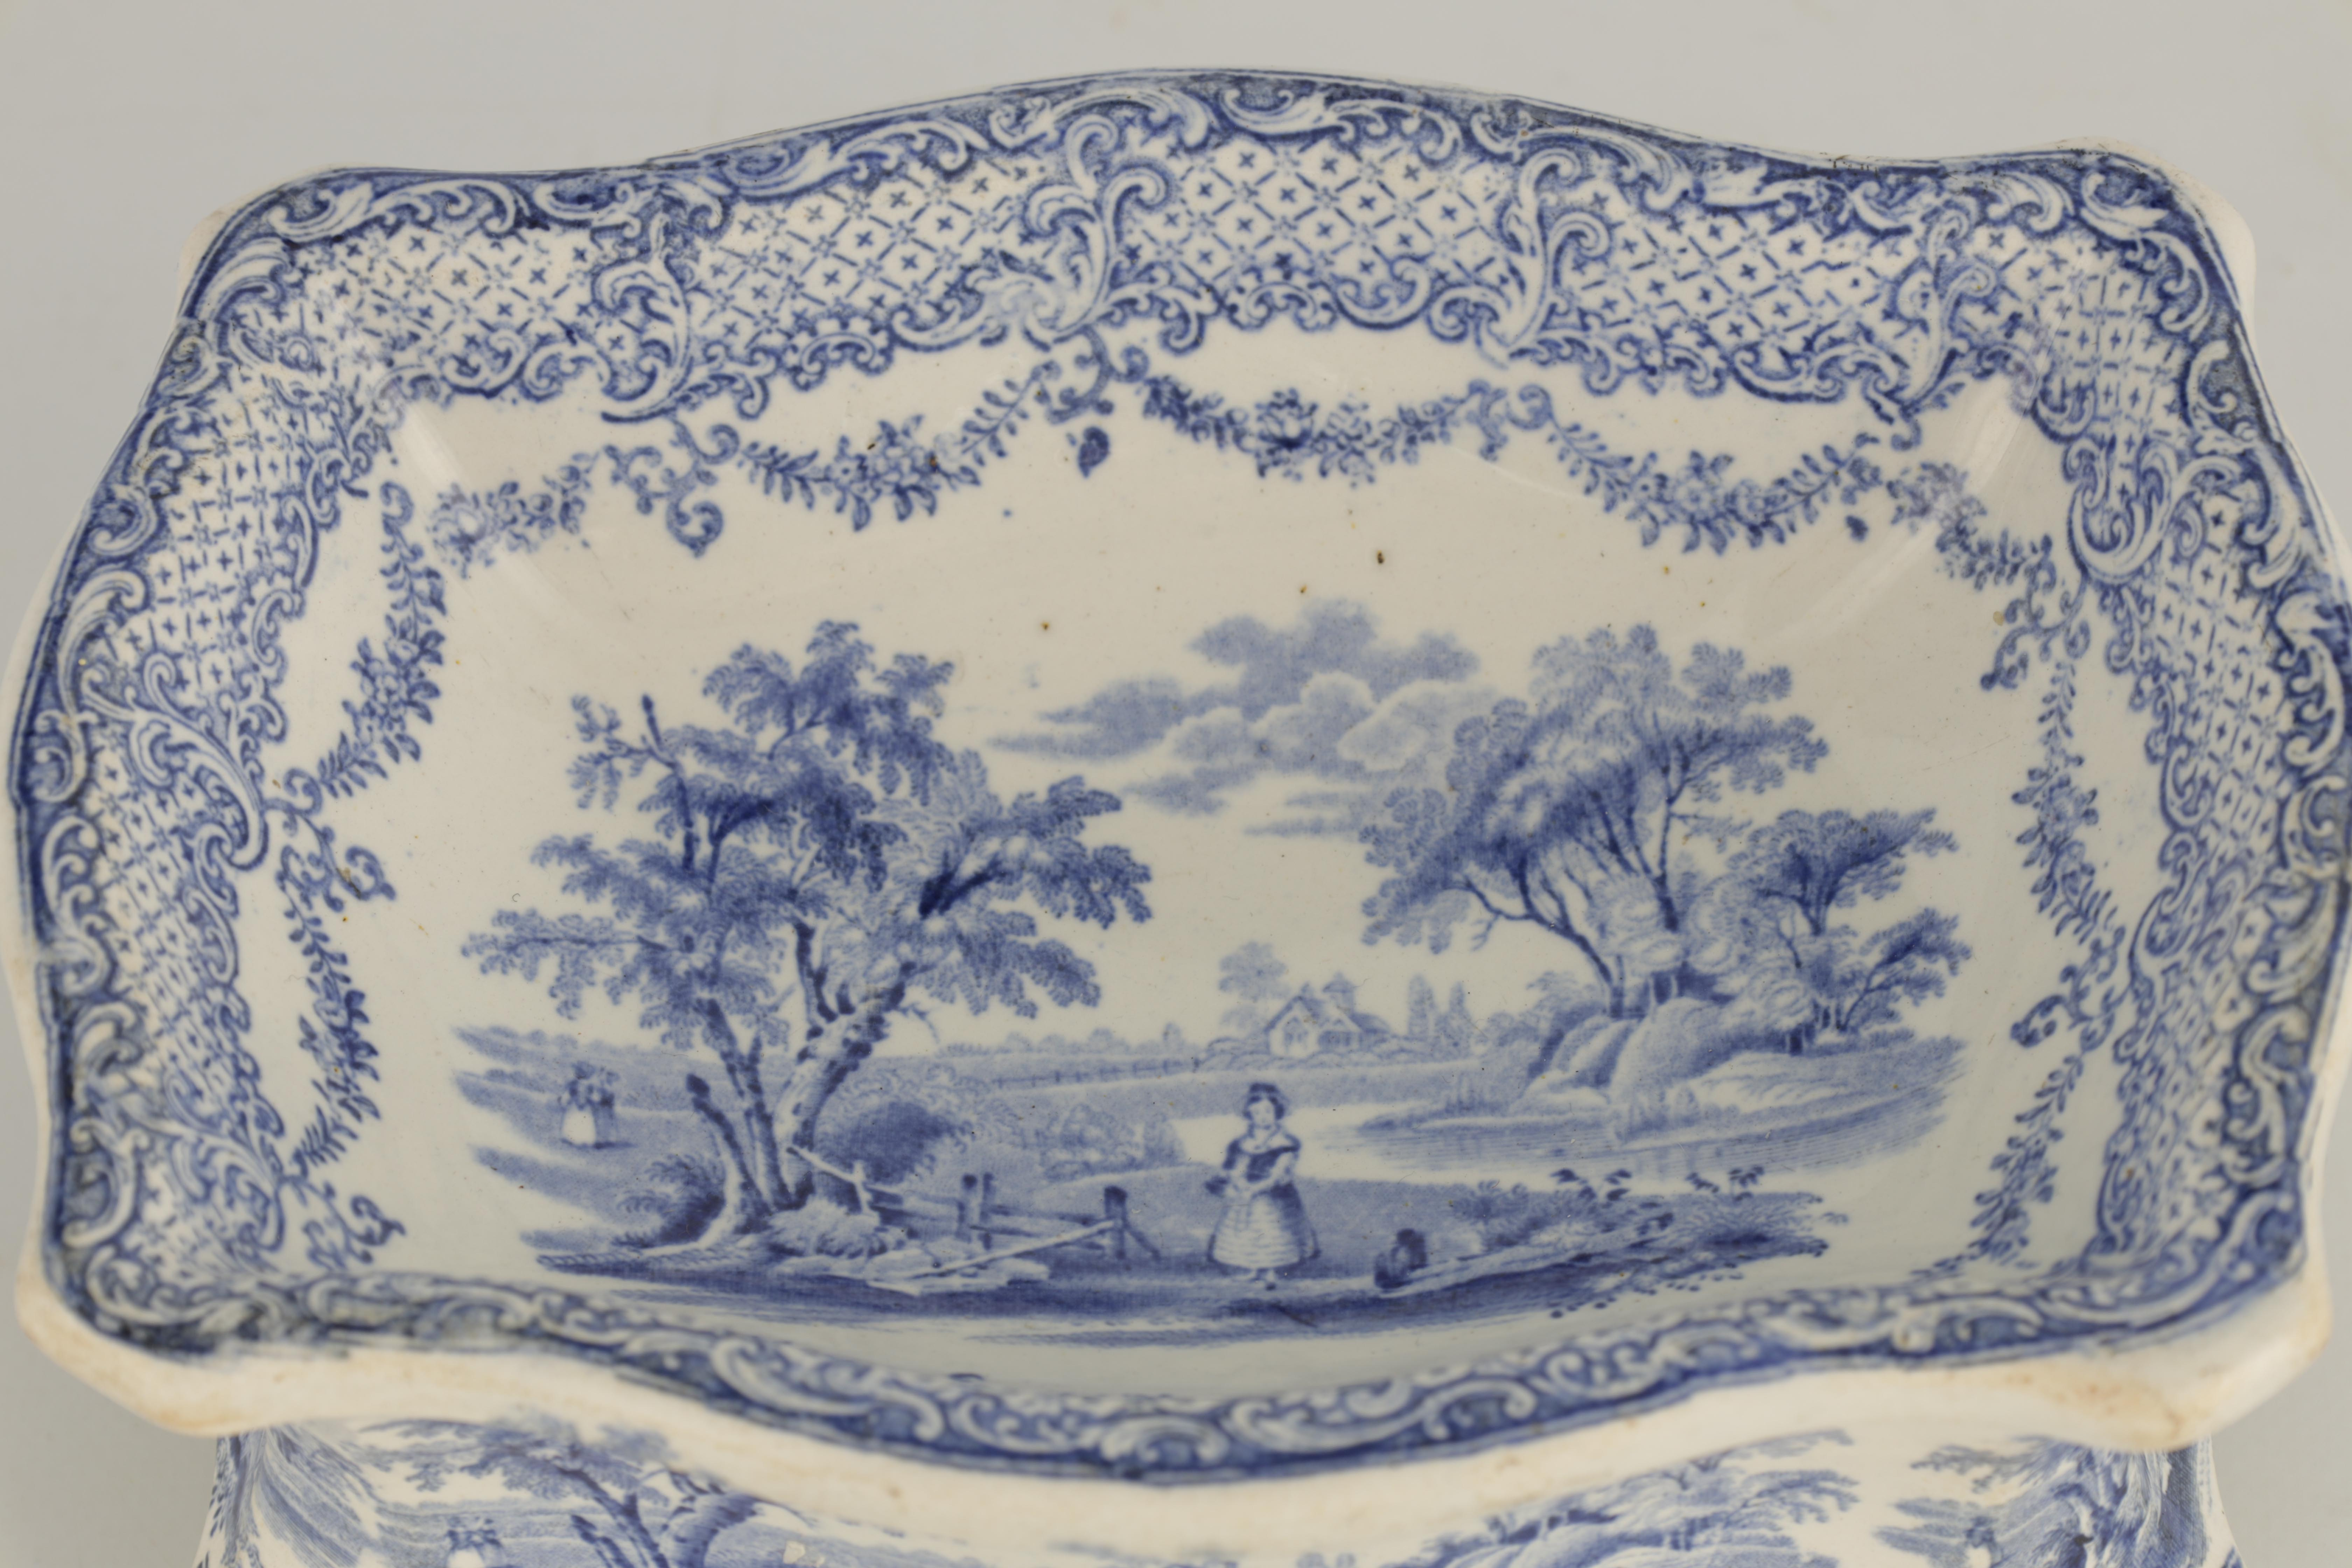 A RARE 19TH CENTURY RIDGWAY BLUE AND WHITE POTTERY DOG BOWL decorated with landscape scenes - Image 4 of 7